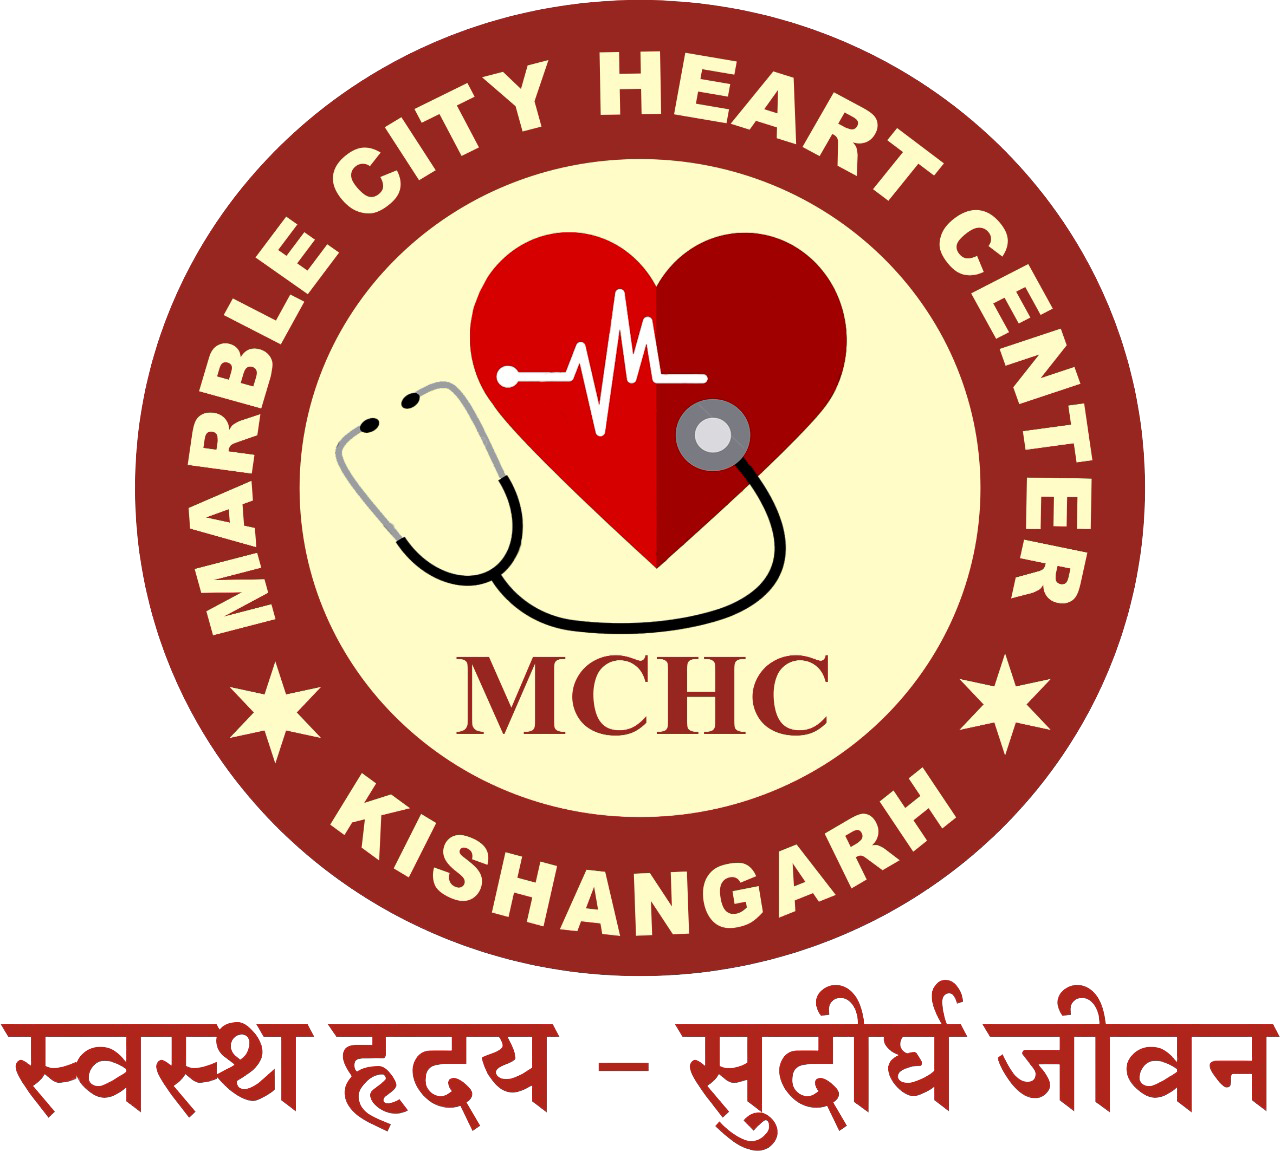 Marble City Heart Center